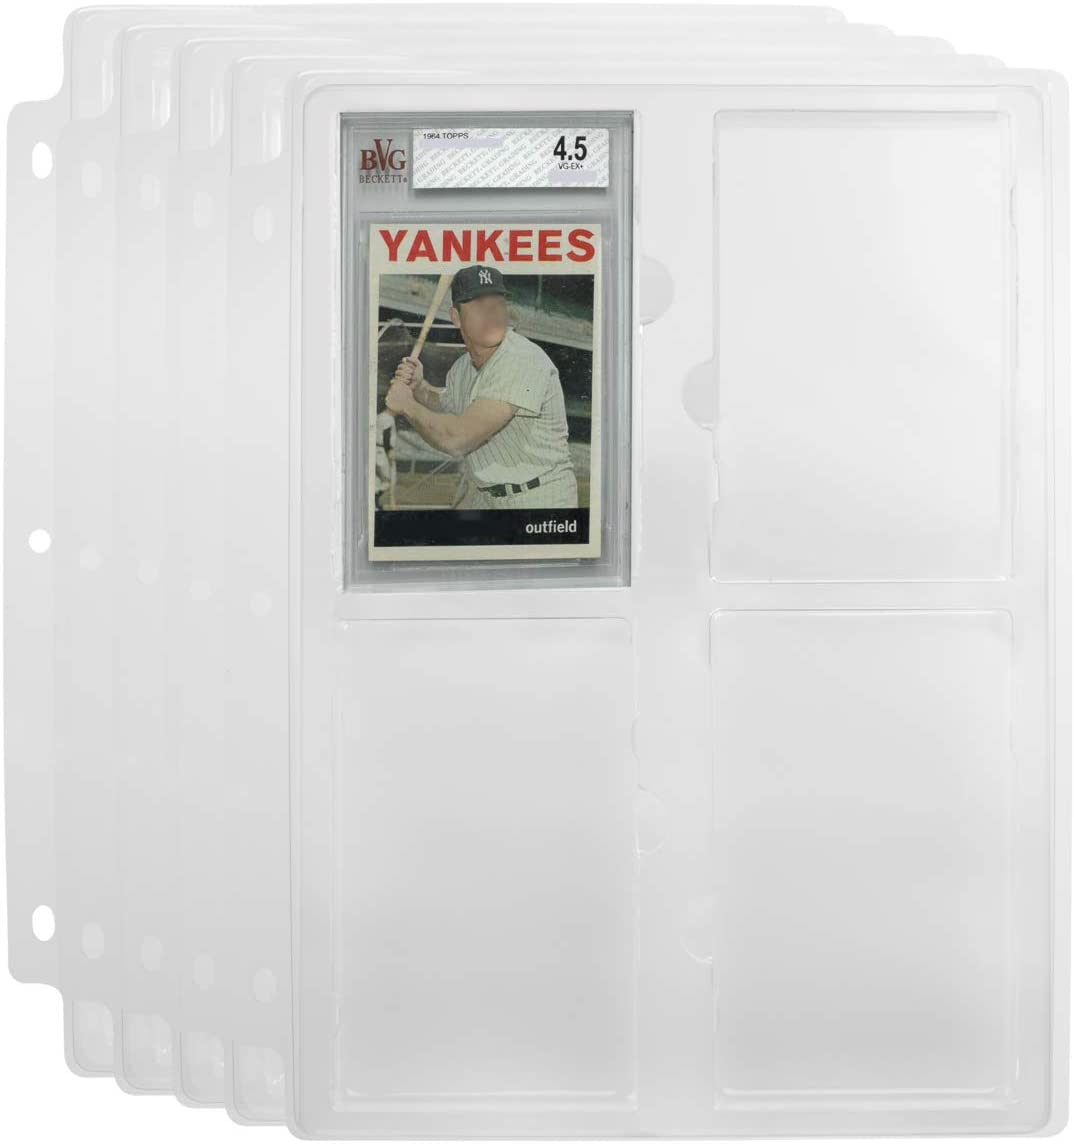 Simply Genius 5 Pack Collectible Cards Slabs Storage Tray Holder for Graded Sports Cards and Trading Cards Binder Tray 3 Ring Trading Card Binder Pages Fits Cards Graded by Beckett